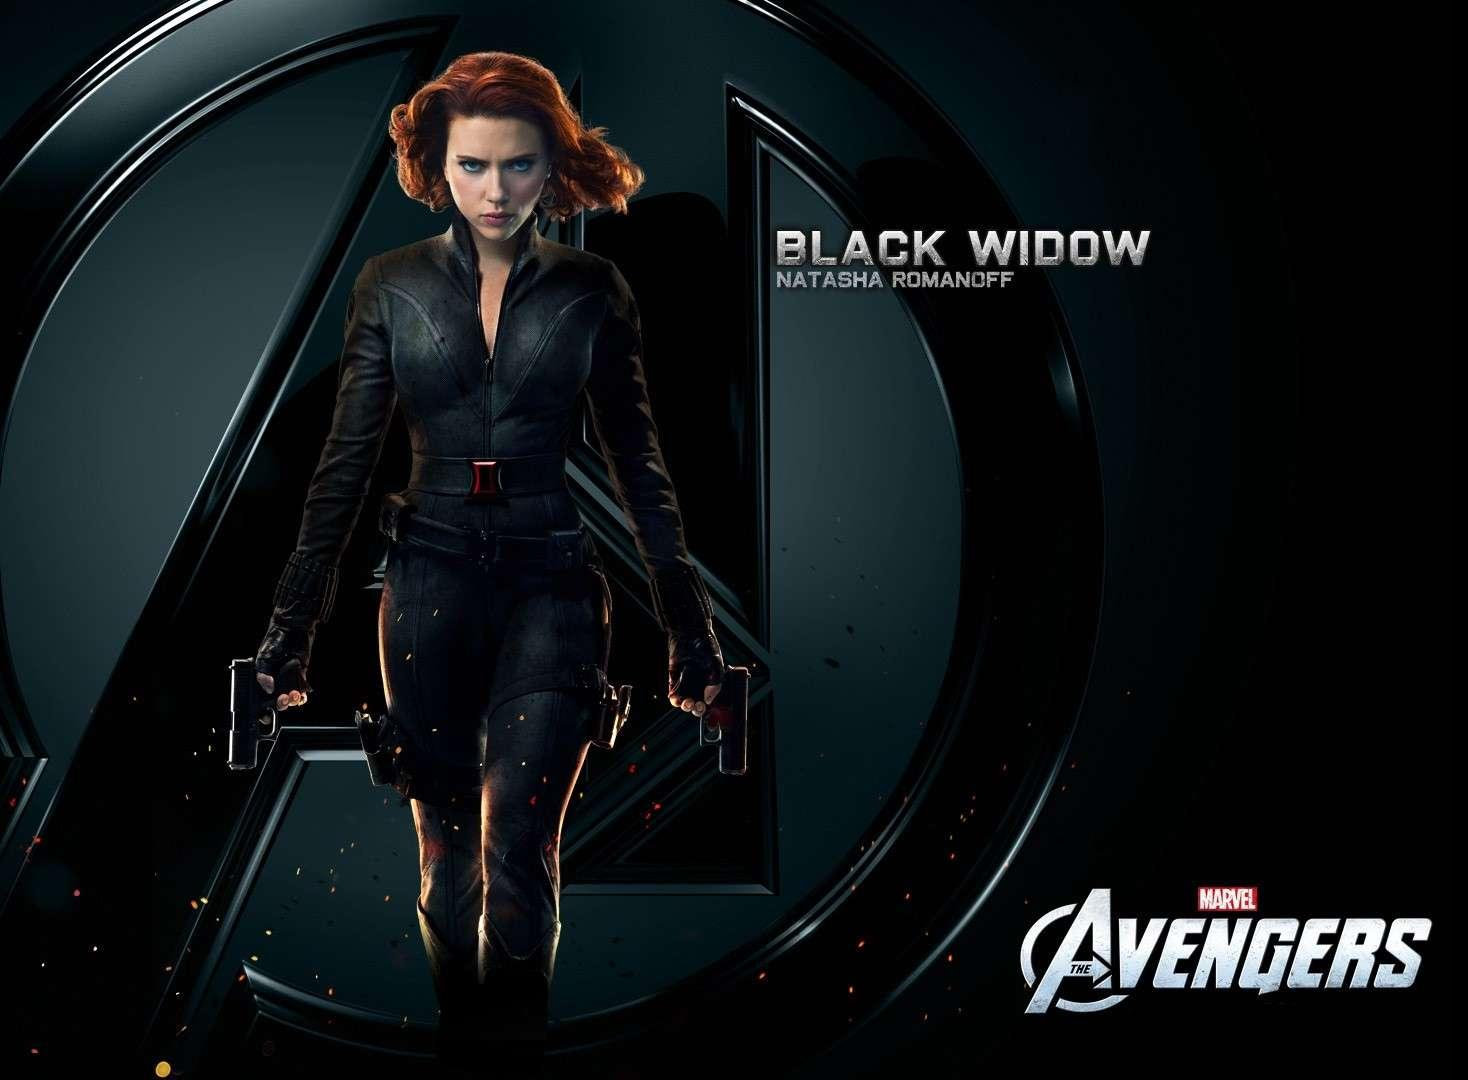 Good Wallpaper Marvel Dark - latest?cb\u003d20120711105644  Perfect Image Reference_586295.jpg/revision/latest?cb\u003d20120711105644